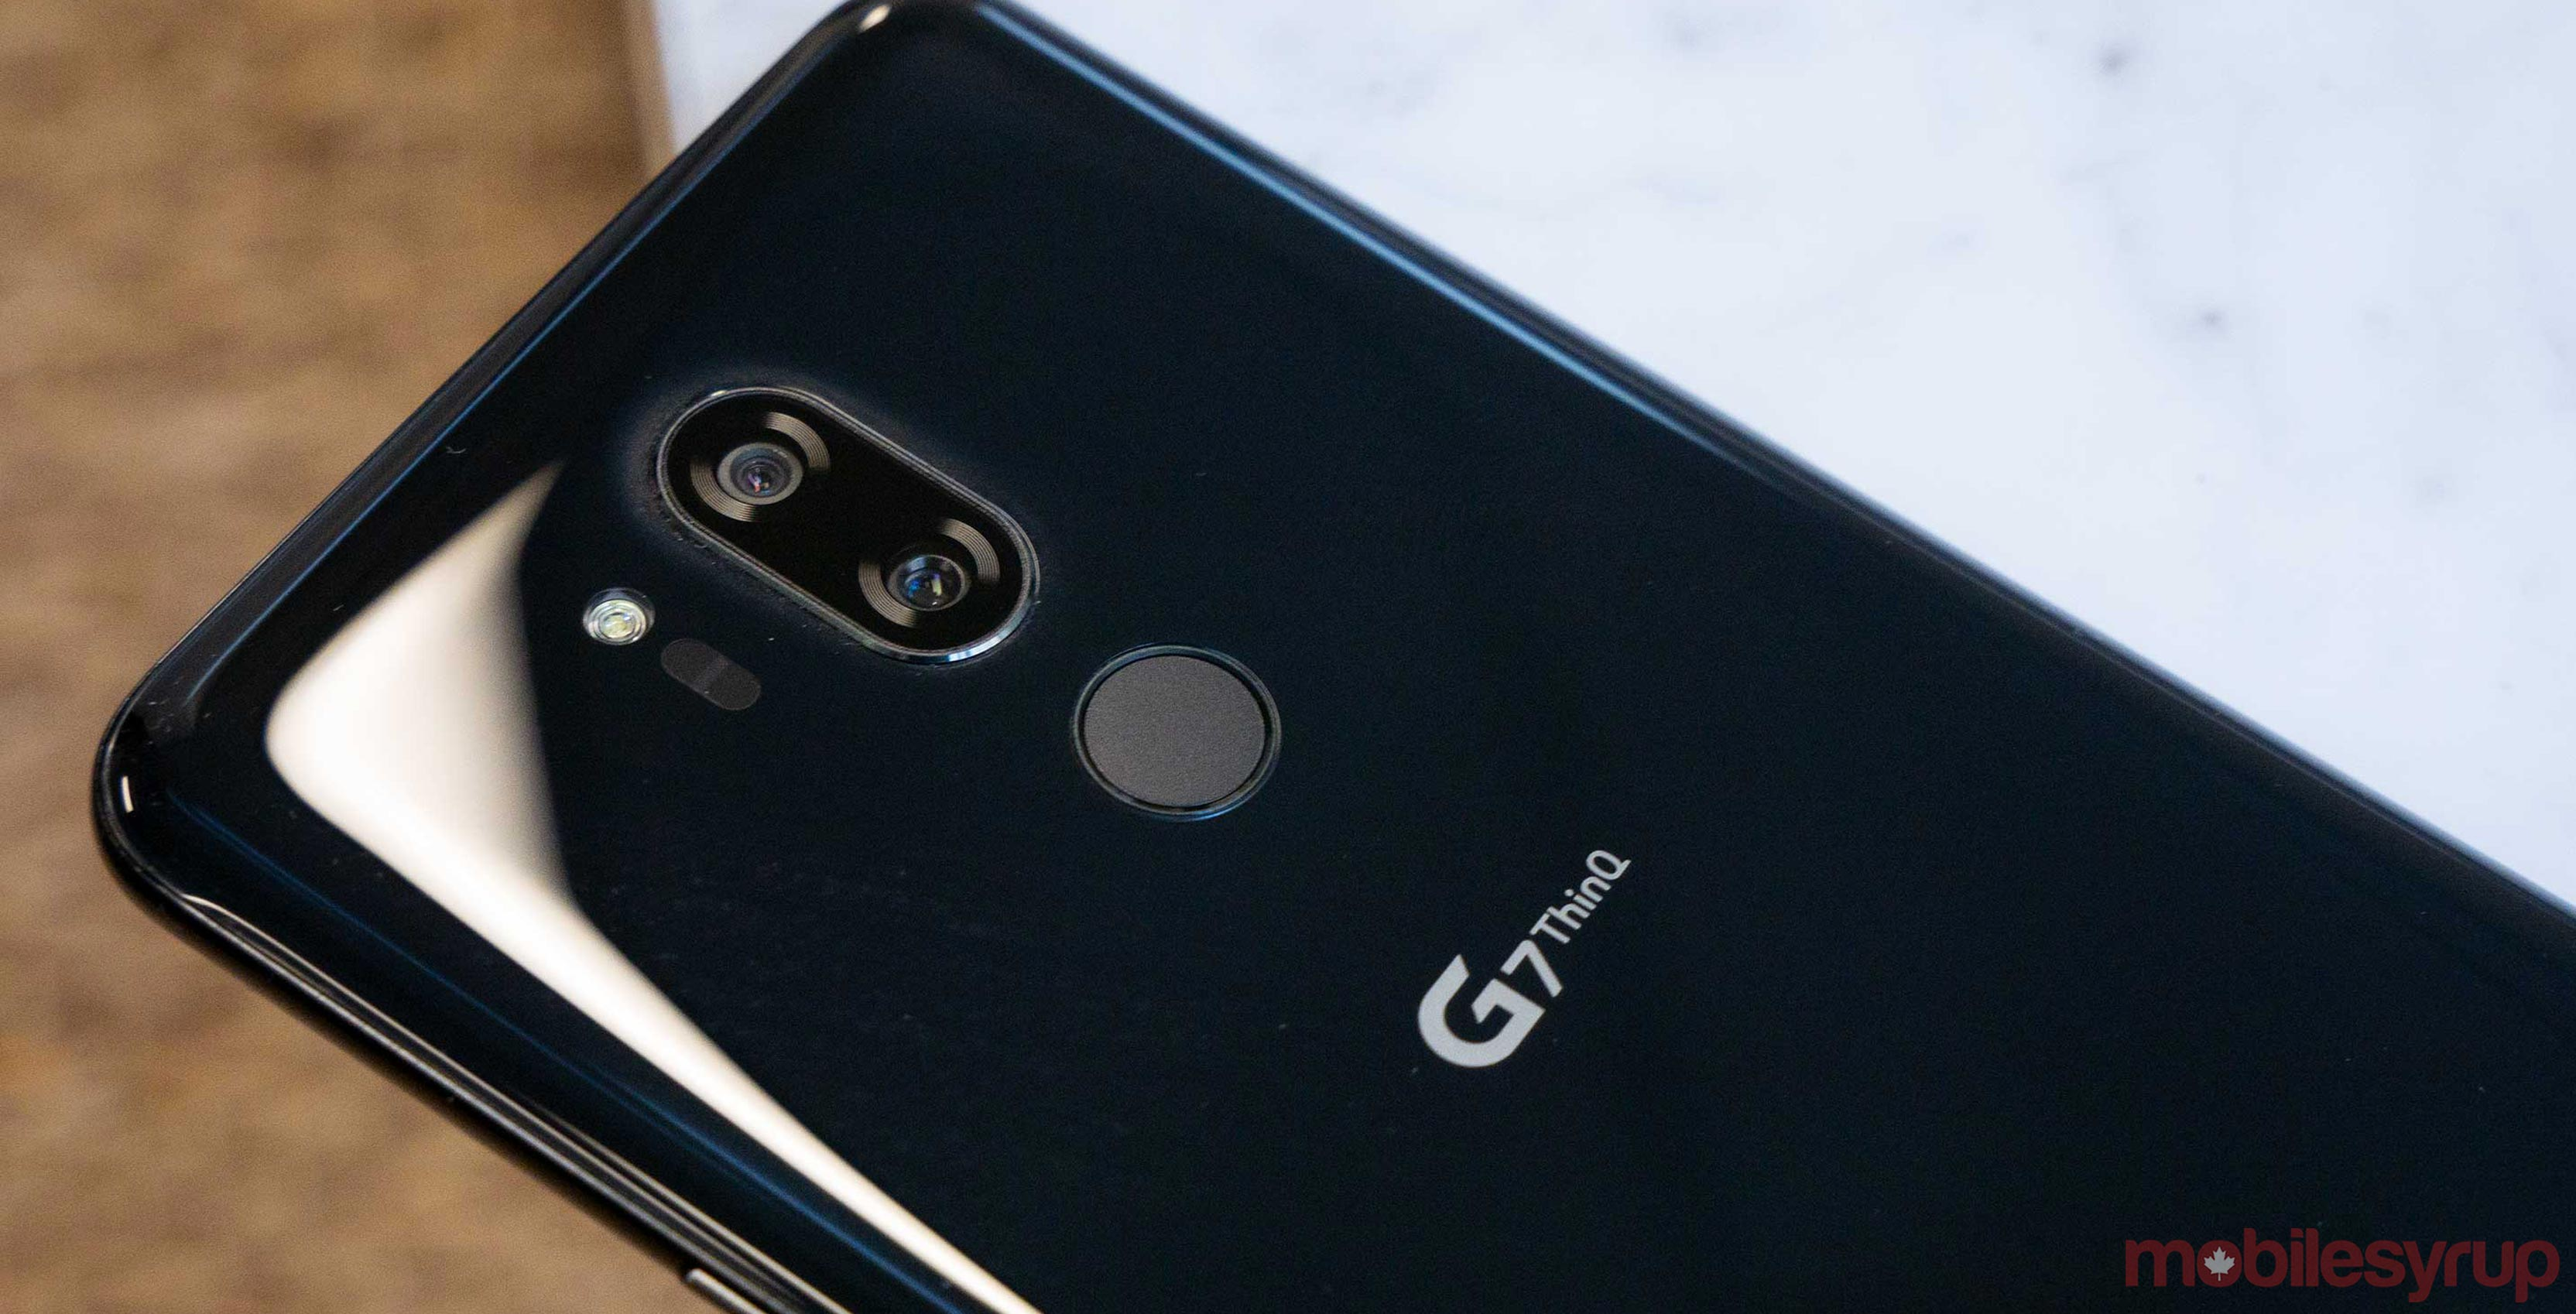 LG to update G7 ThinQ to Android 9 Pie in Q1 2019